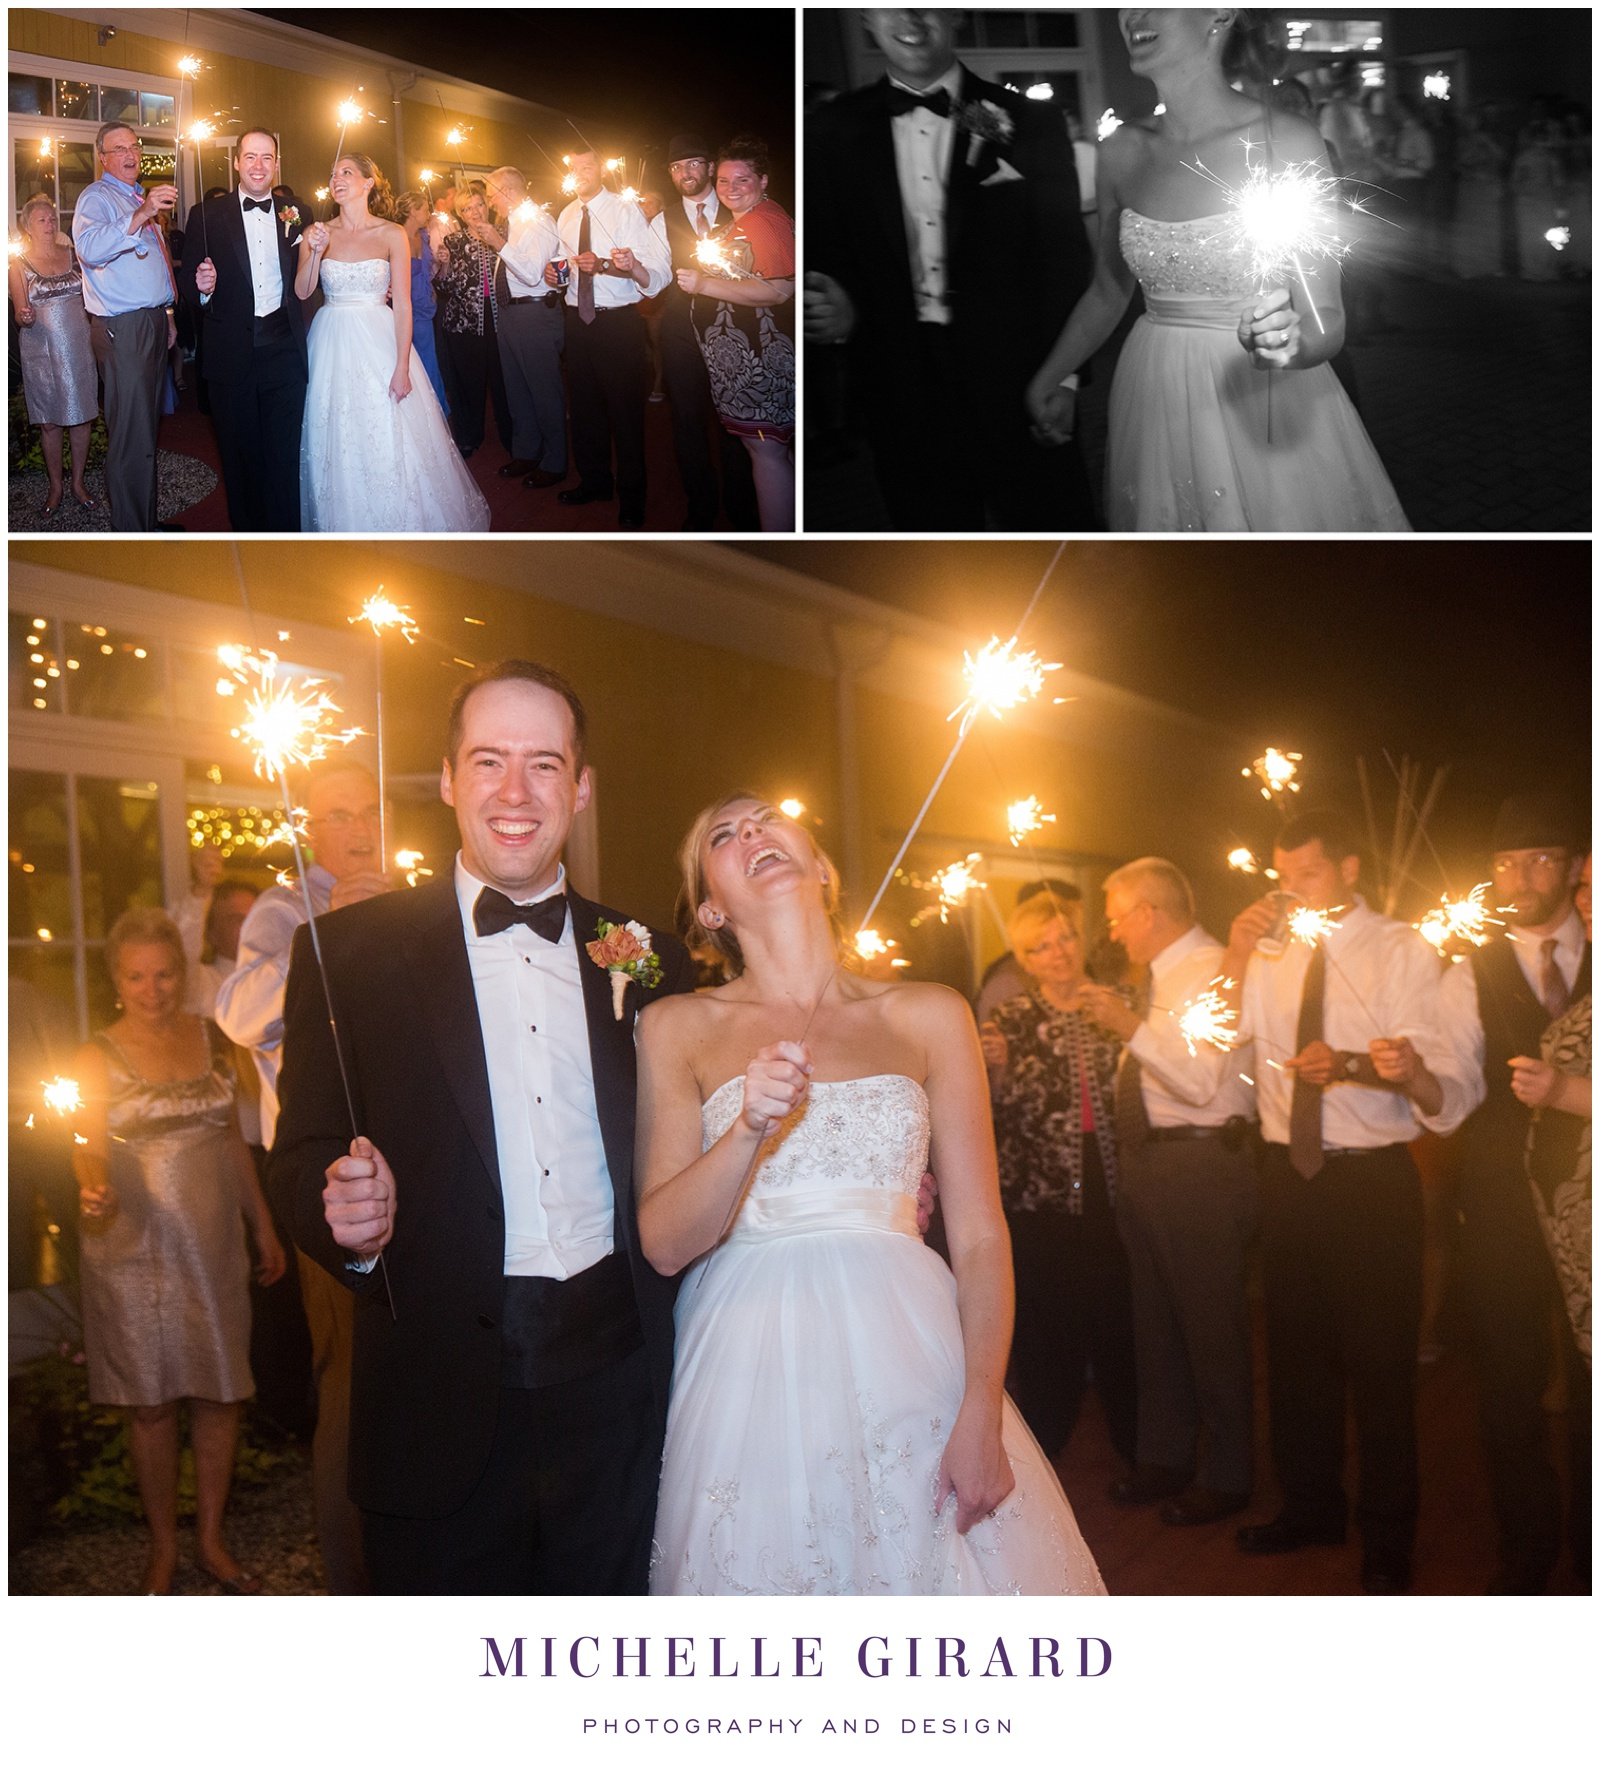 TheRanch_RusticFallWedding_MichelleGirardPhotography15.jpg